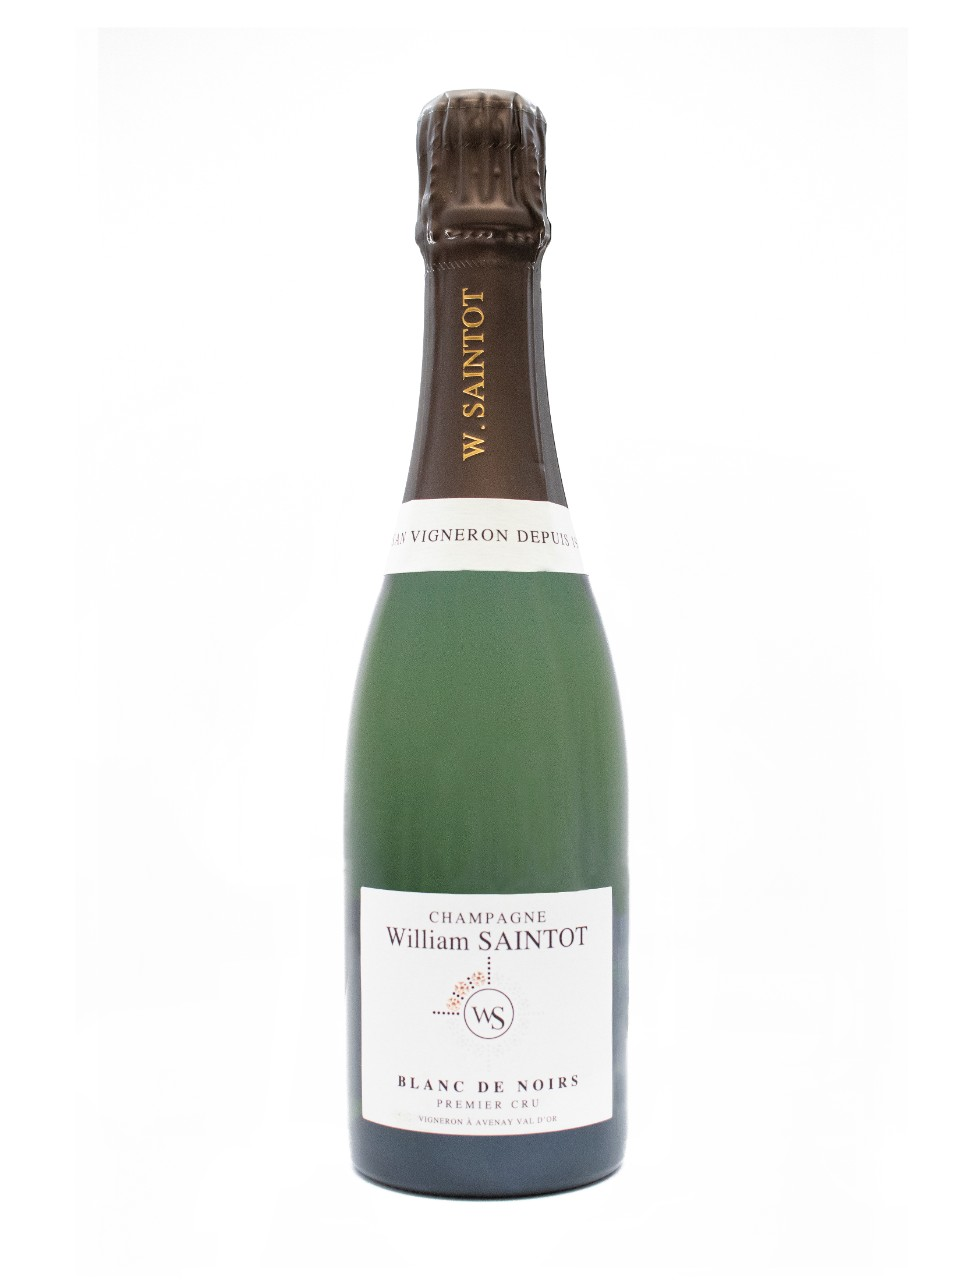 Chopine Blanc de Noir Champagne from LCBO